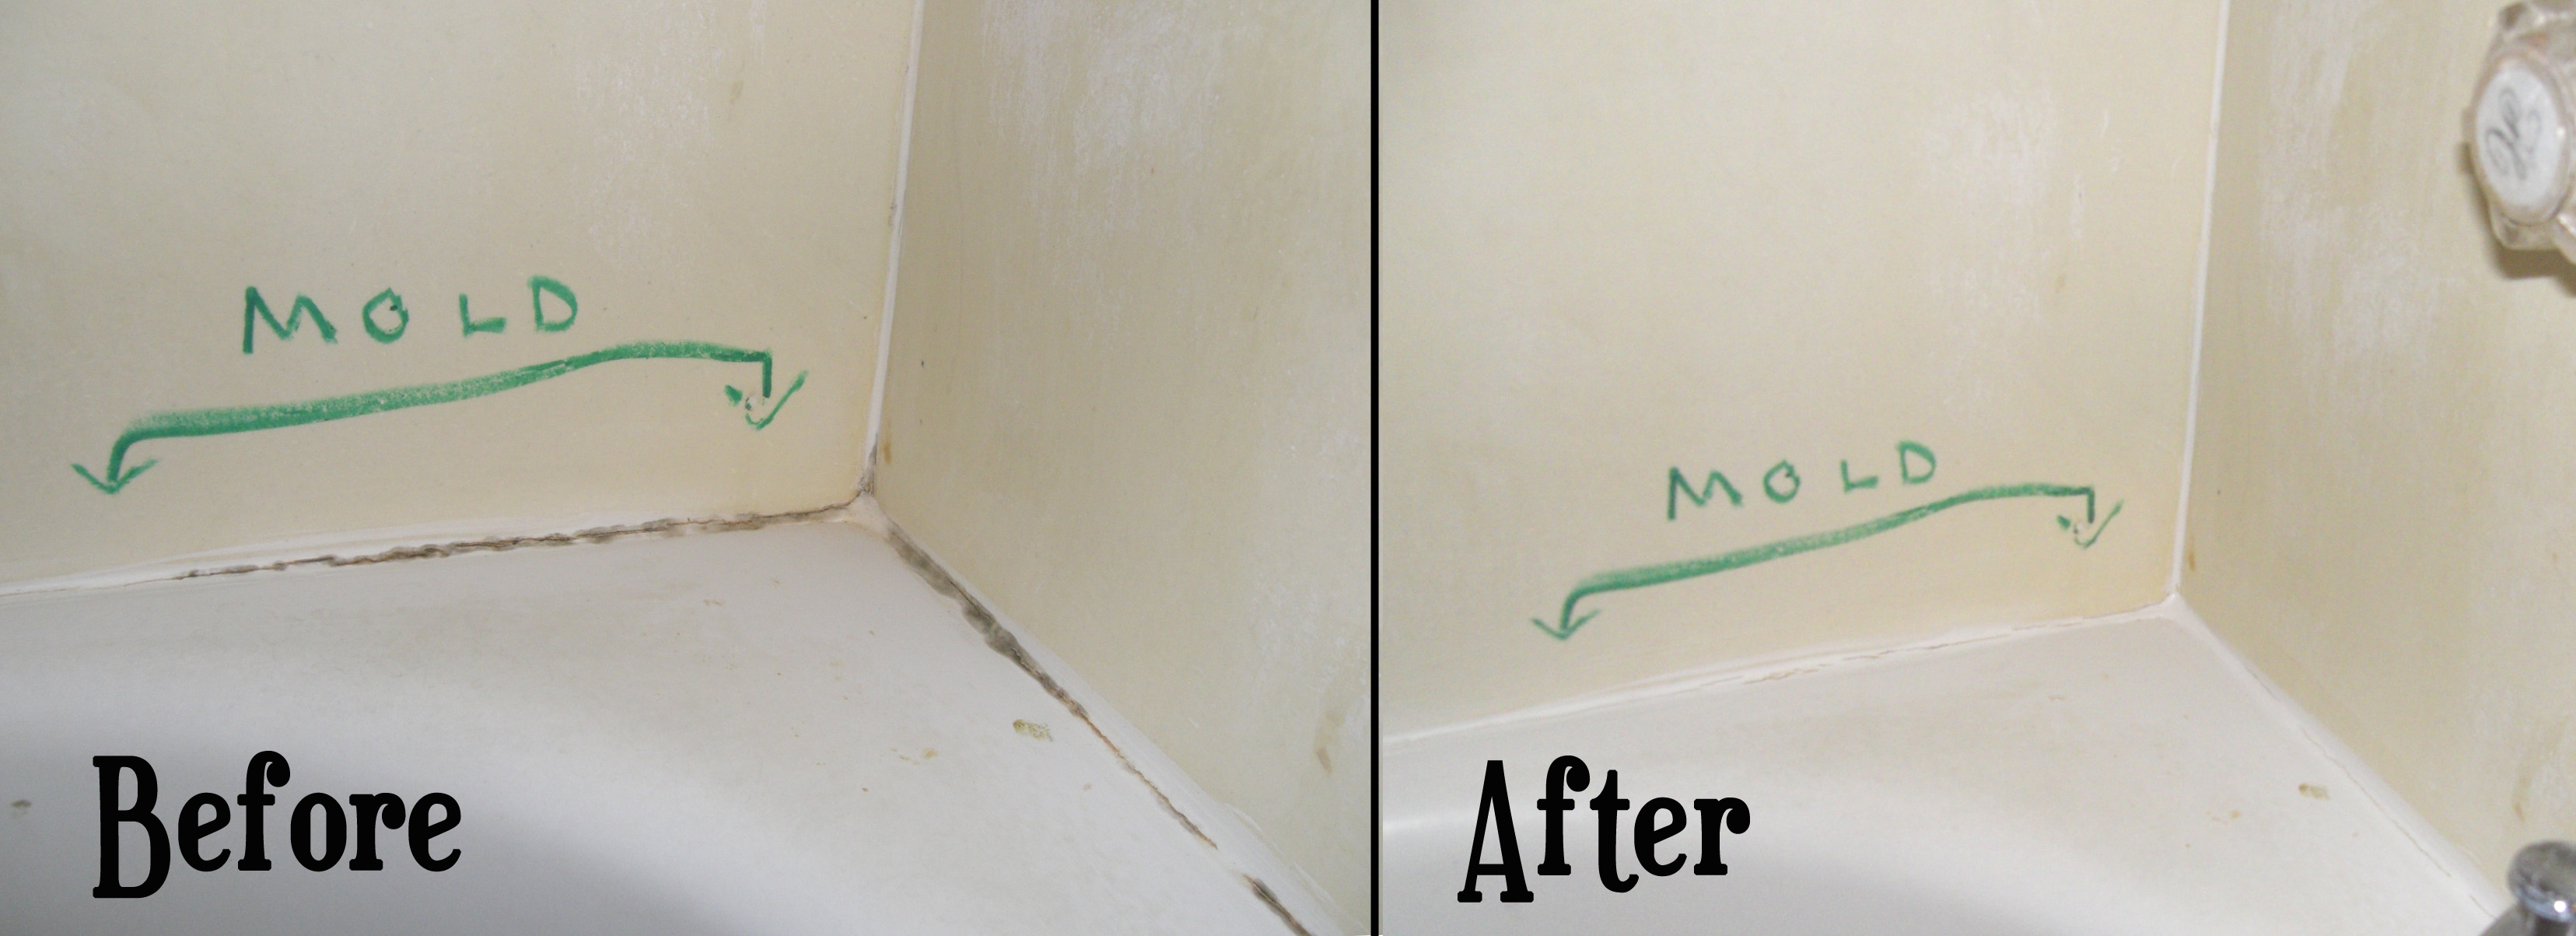 Re Sparkle Cleaning   Bathroom Caulk Sealant Cleaning   Before And After